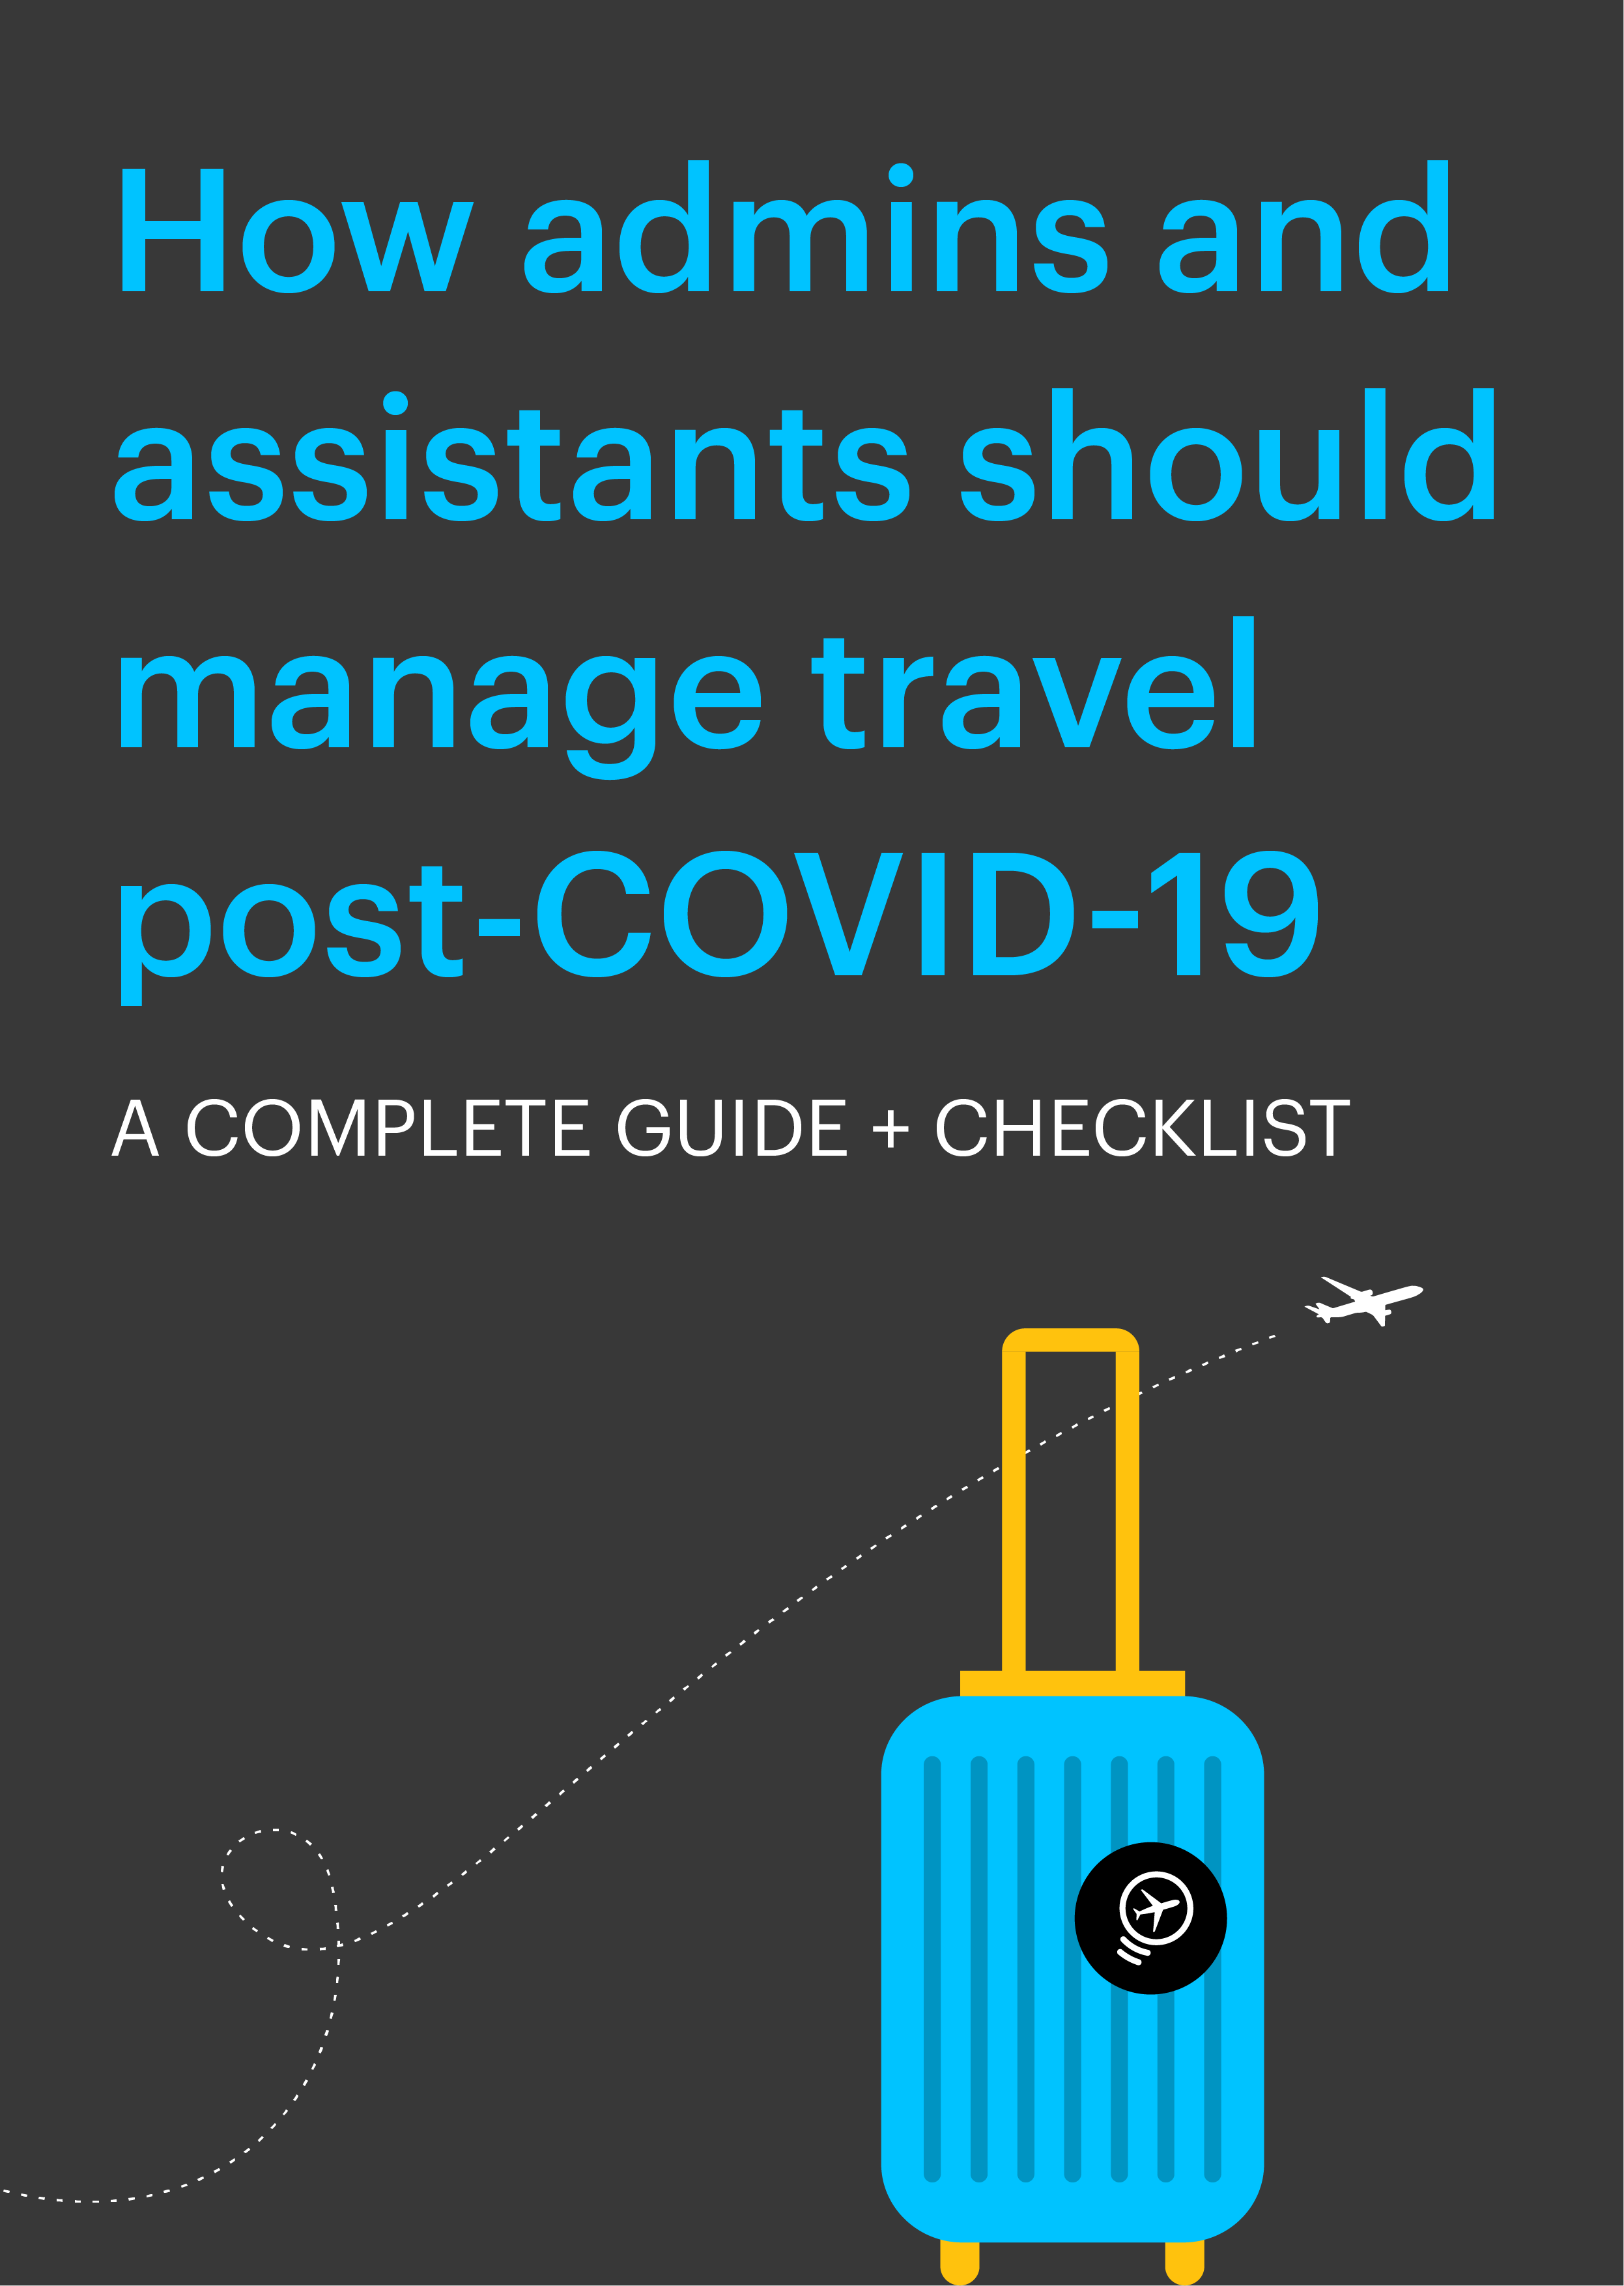 How admins and assistants should manage travel post-COVID-19